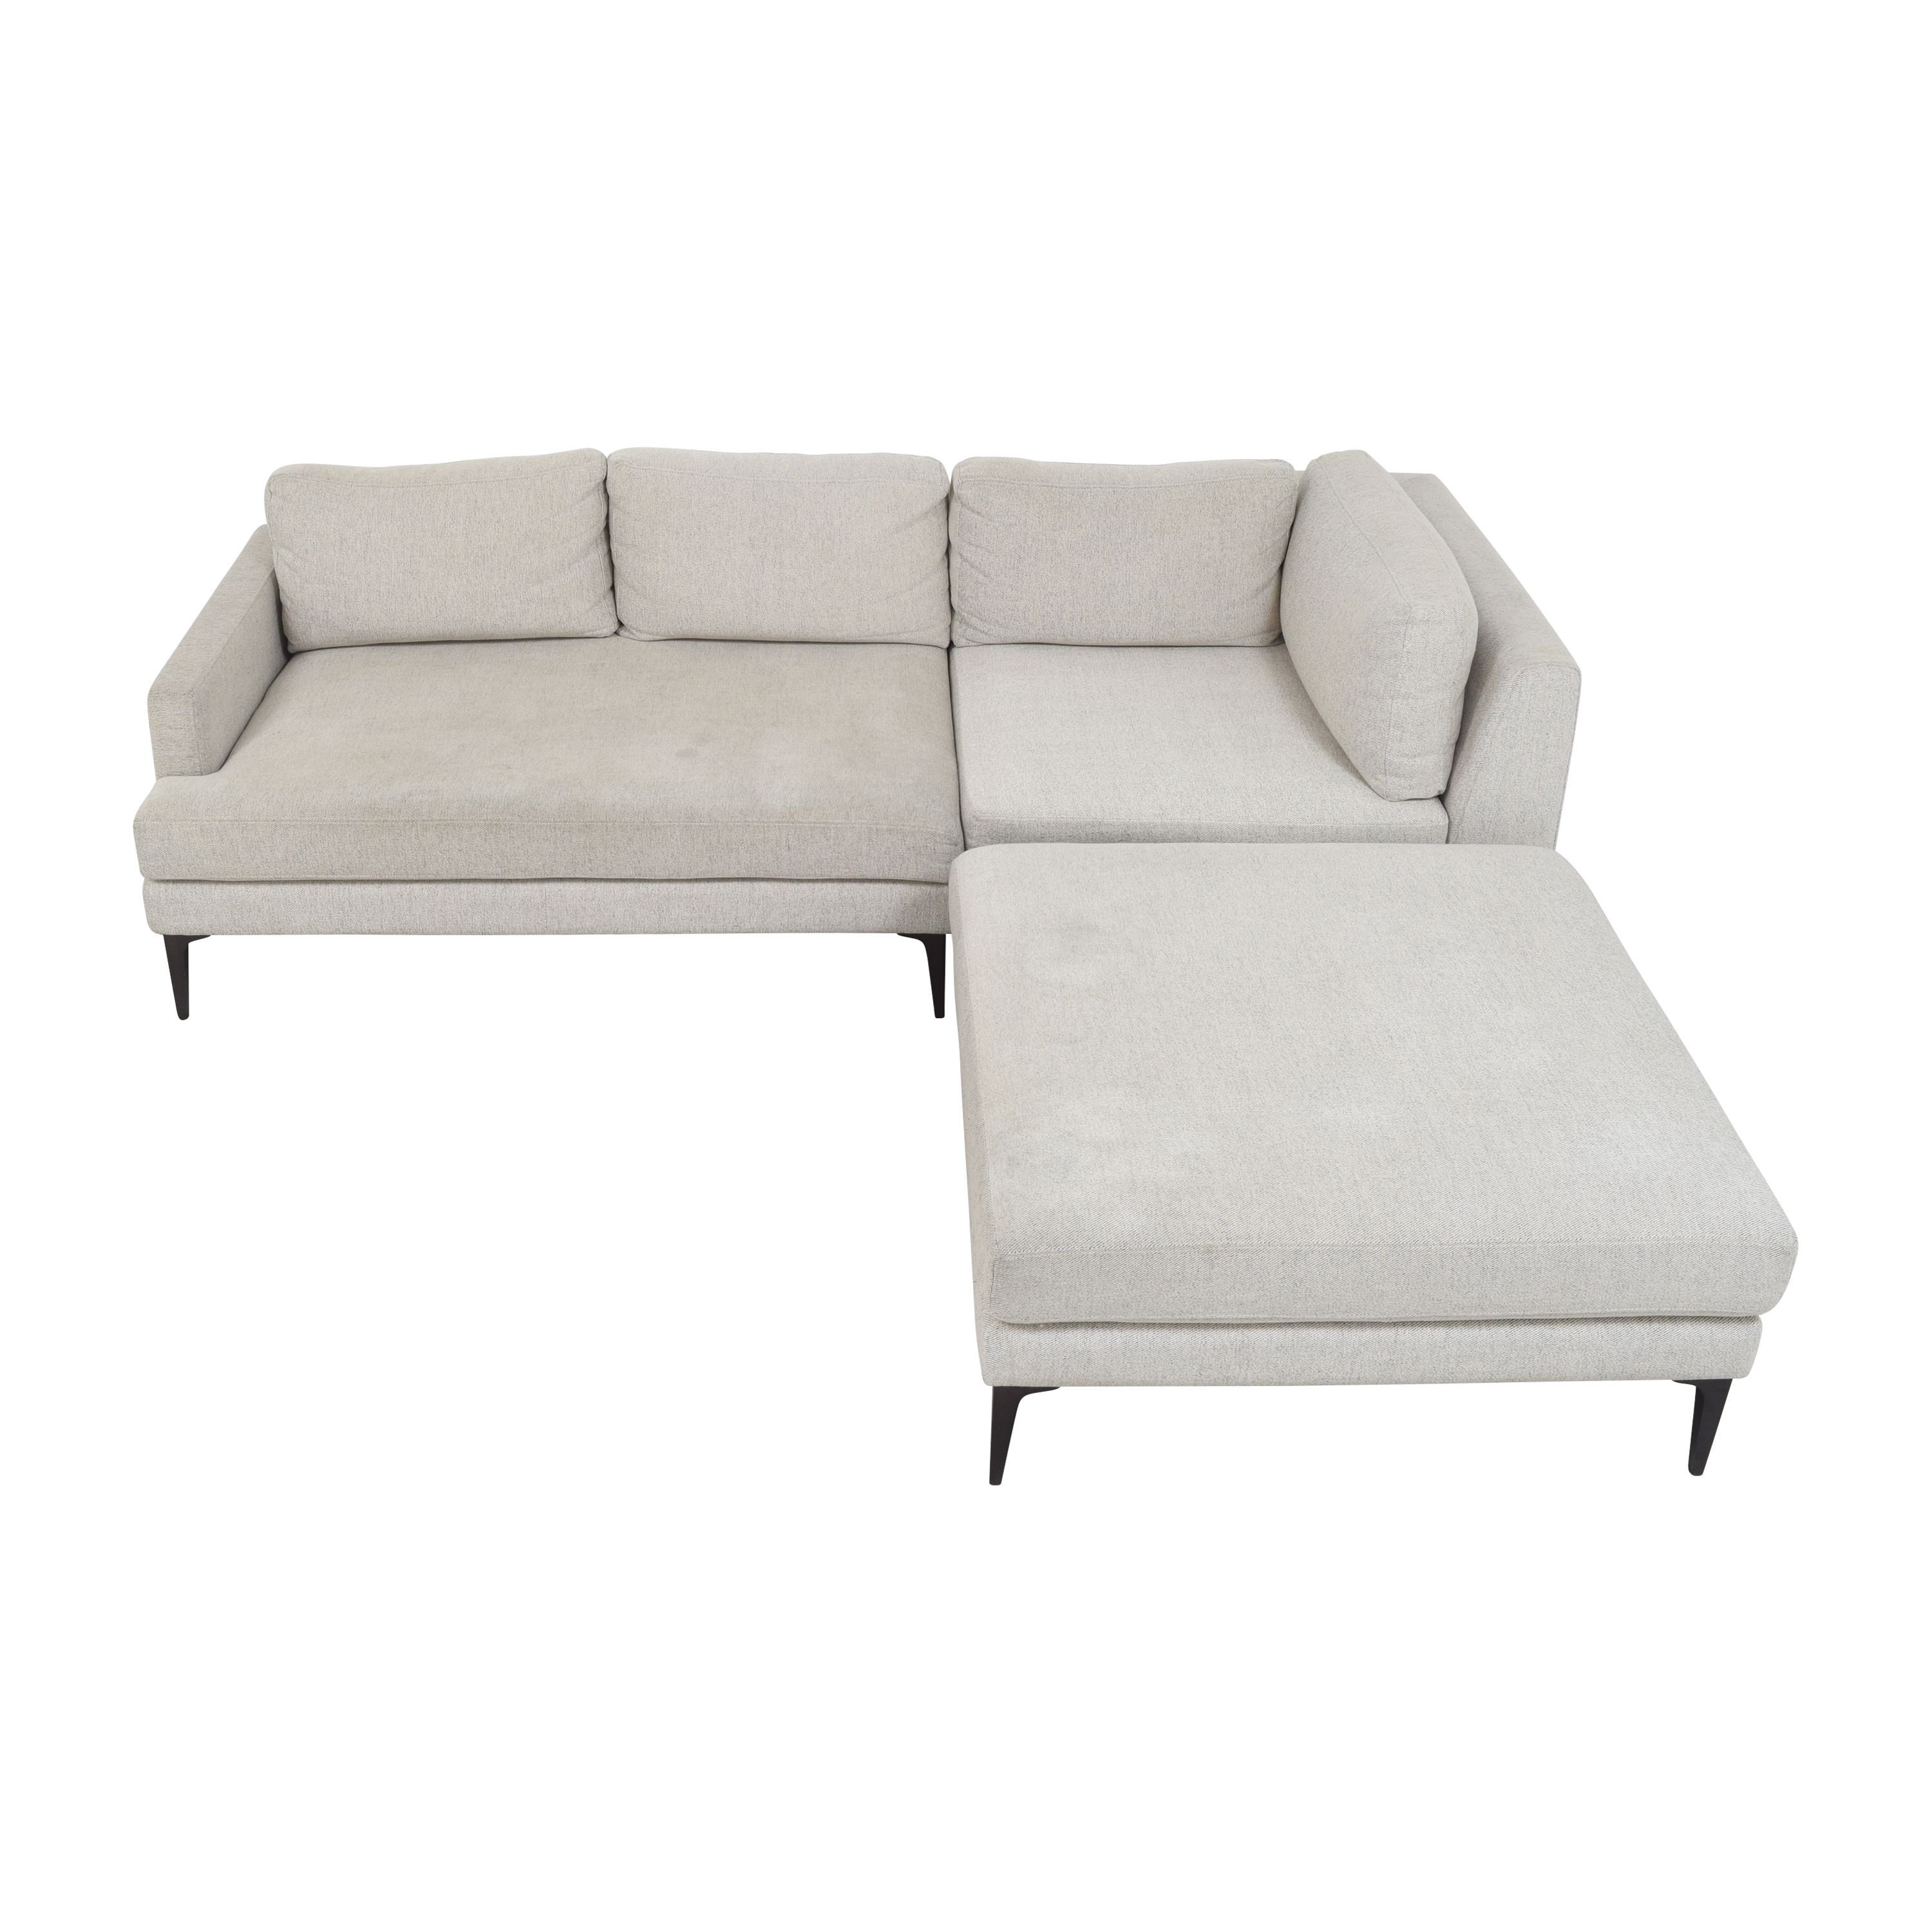 West Elm West Elm Andes Three Piece Chaise Sectional Sofa price